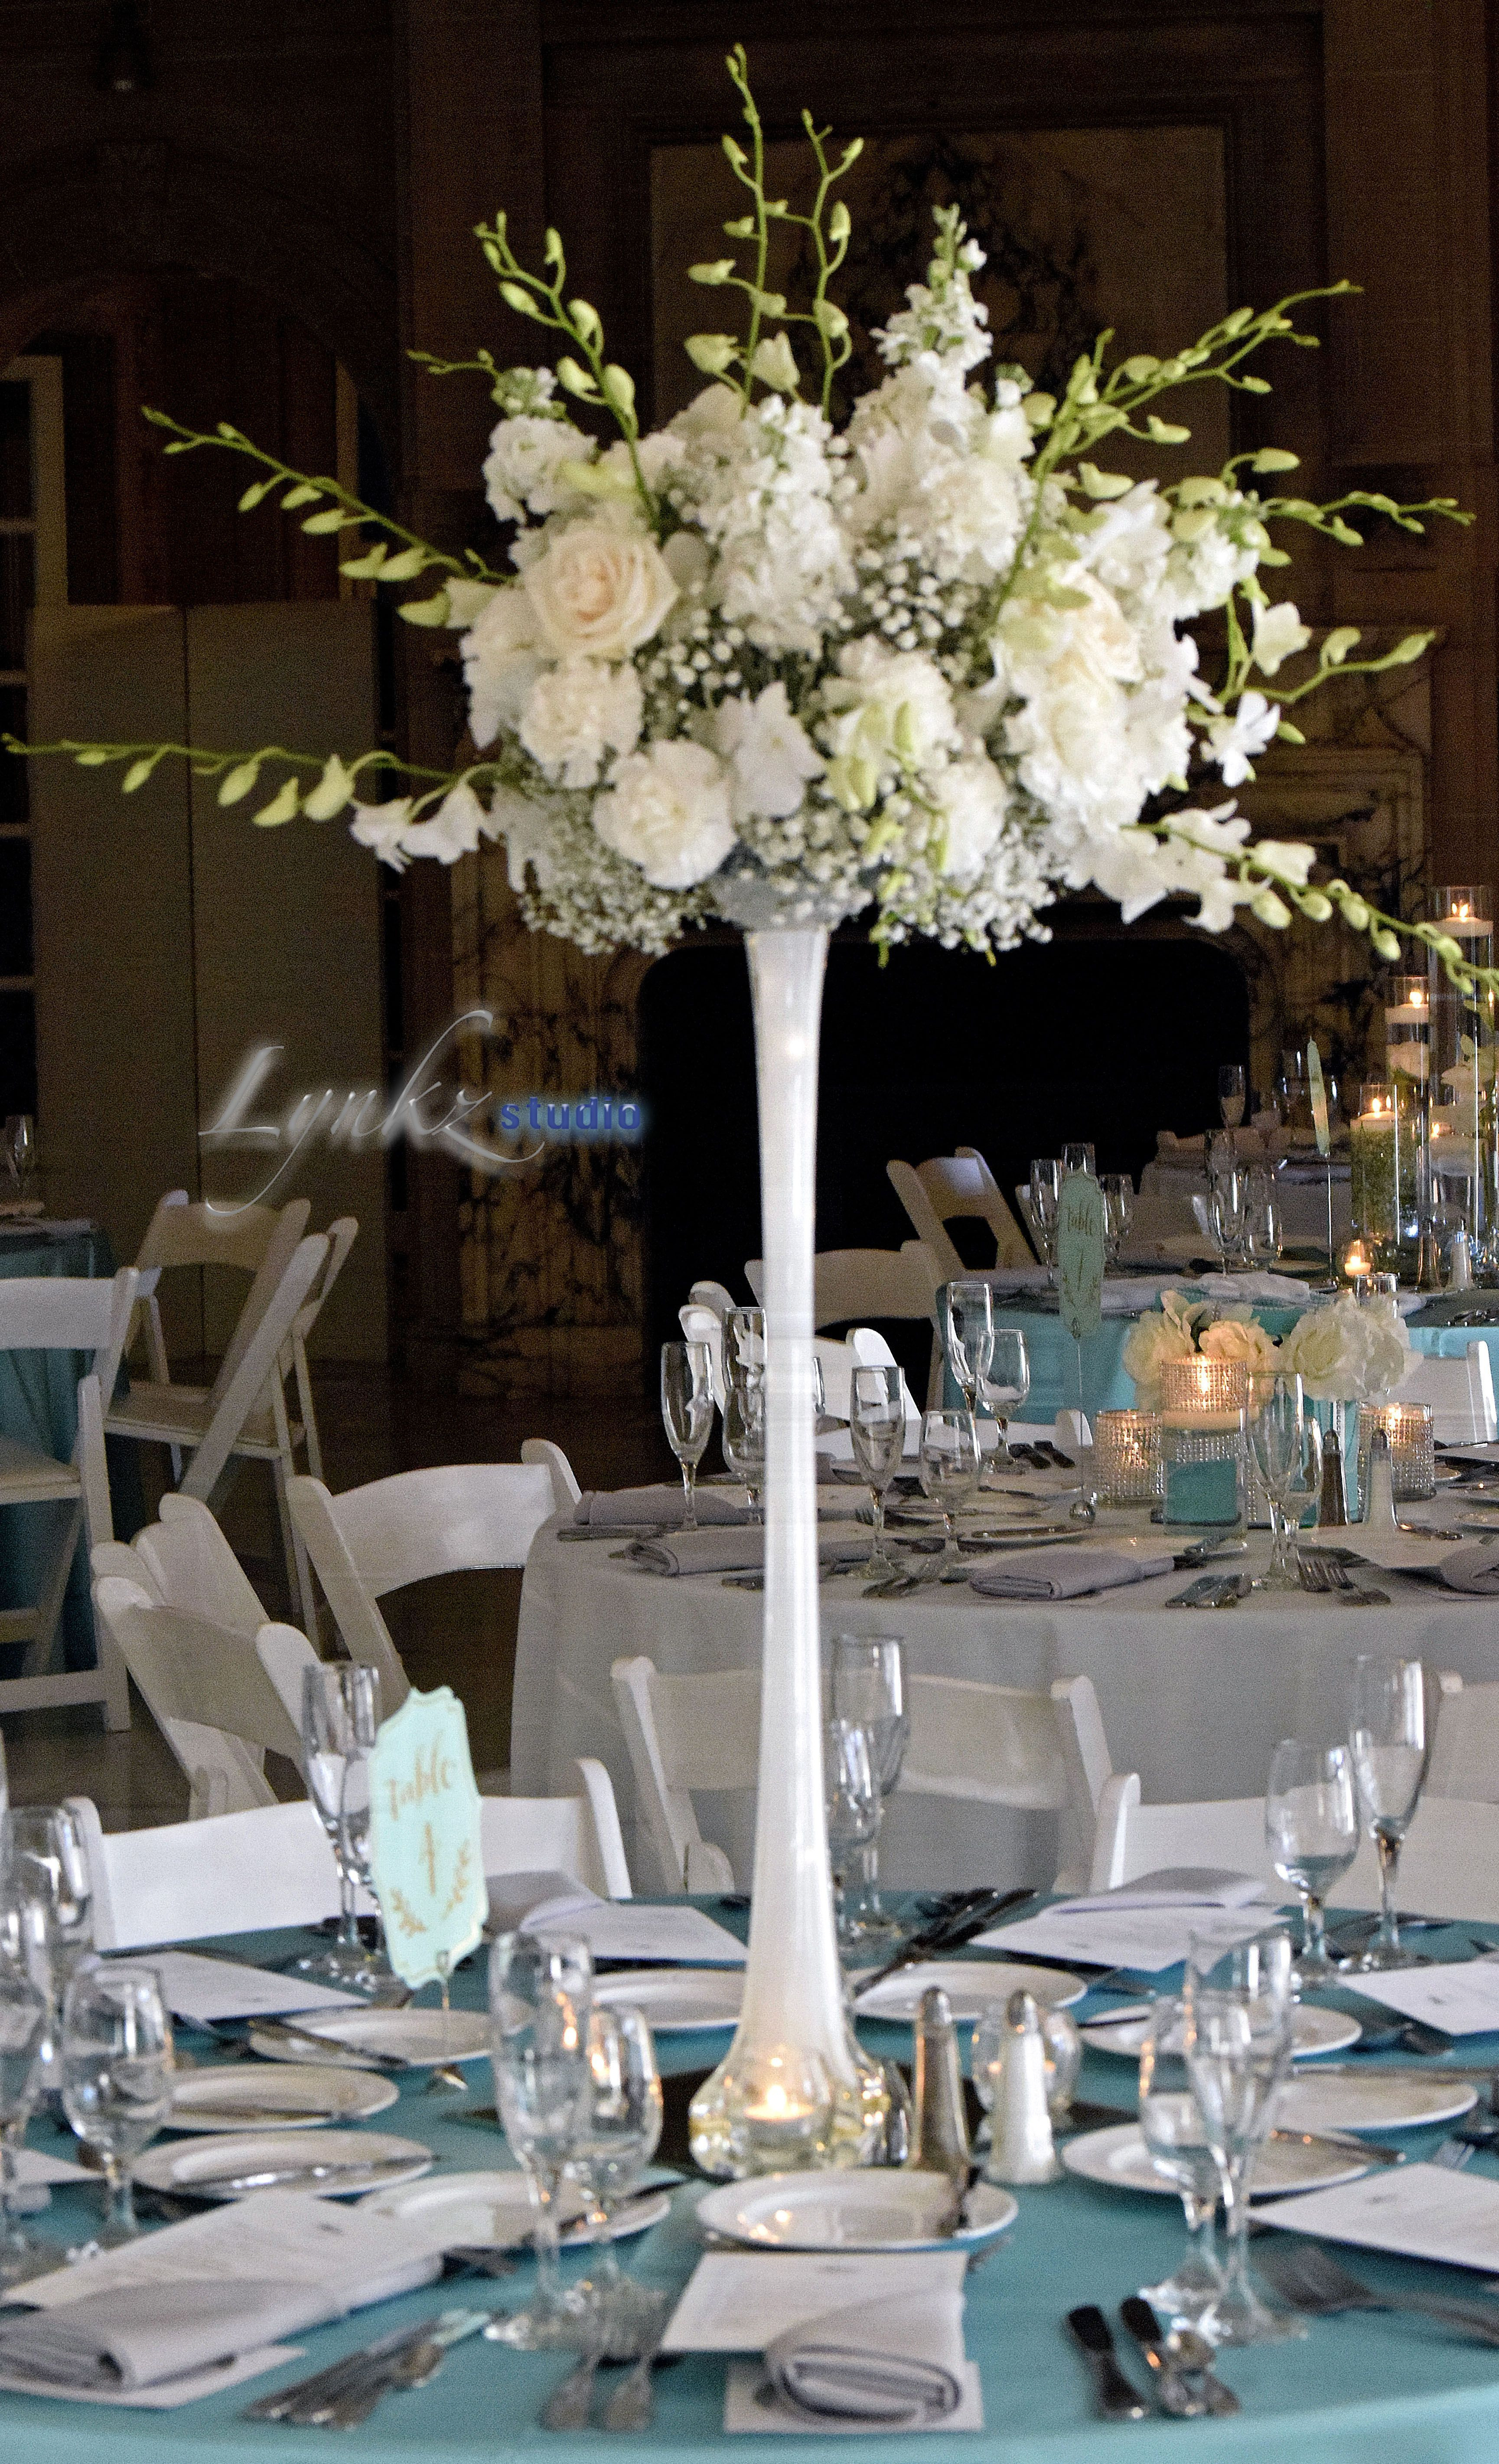 4 Foot Tall Floor Vases Of 30 Pearl Vase Fillers the Weekly World within Beautiful Vase Centerpieces for Weddings Styles Ideas